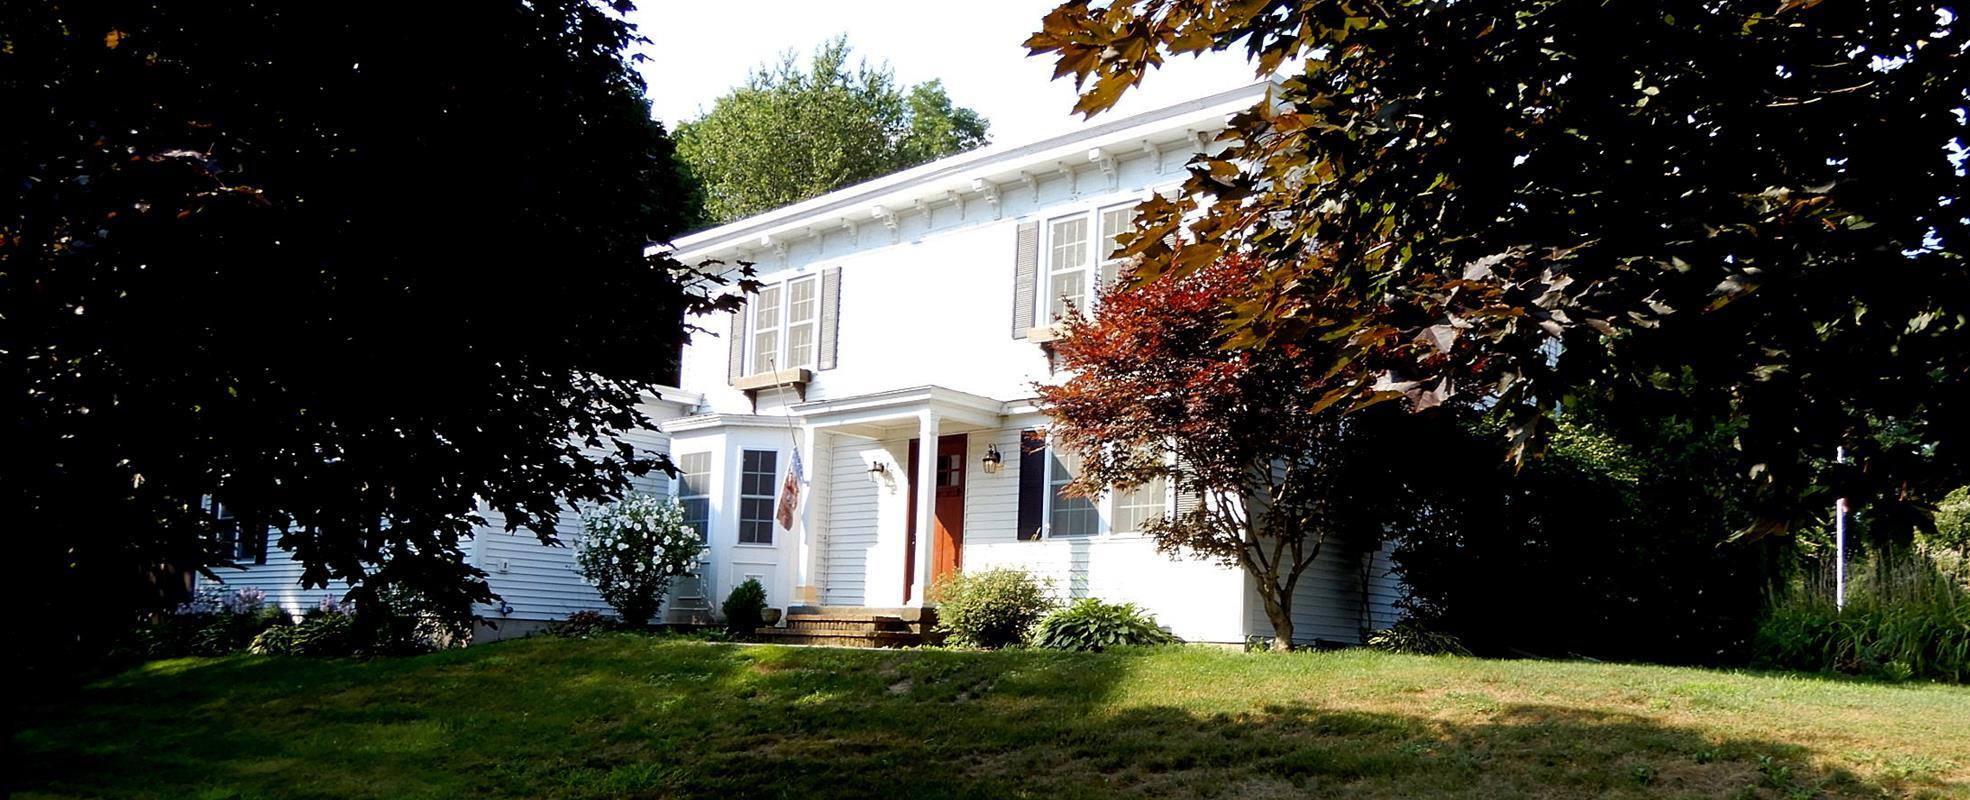 Featured:  1732 RT 67, Valley Falls, NY 12185